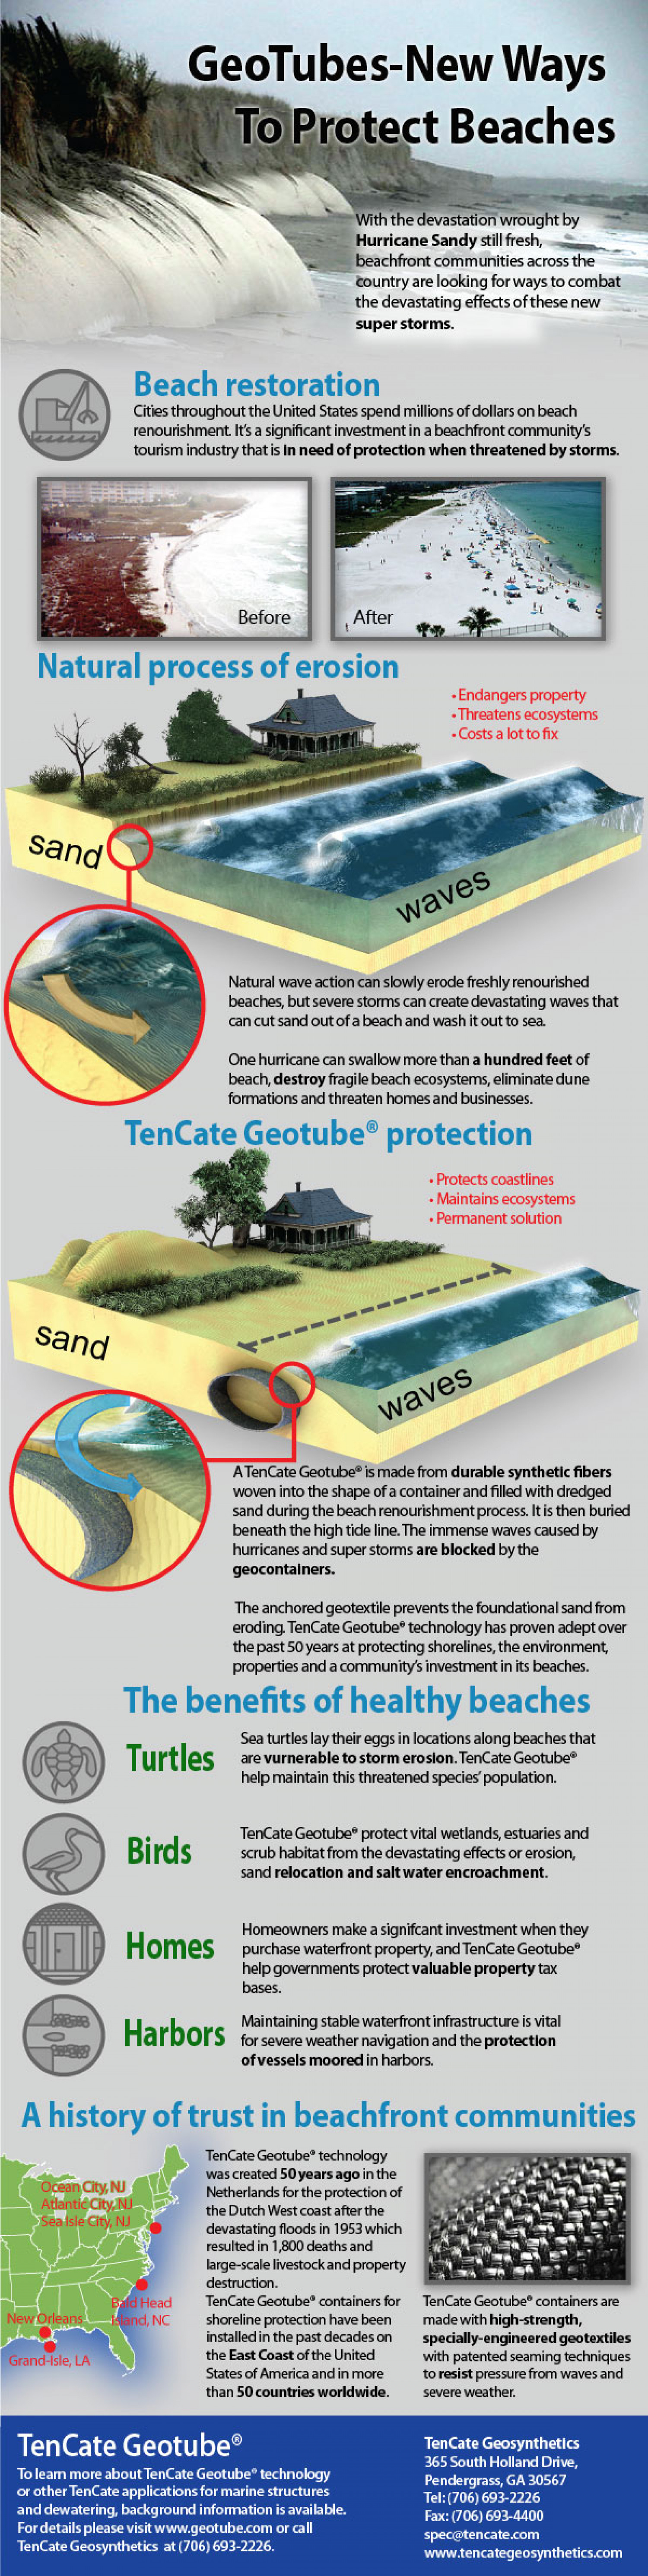 Geotubes to protect Beaches Infographic